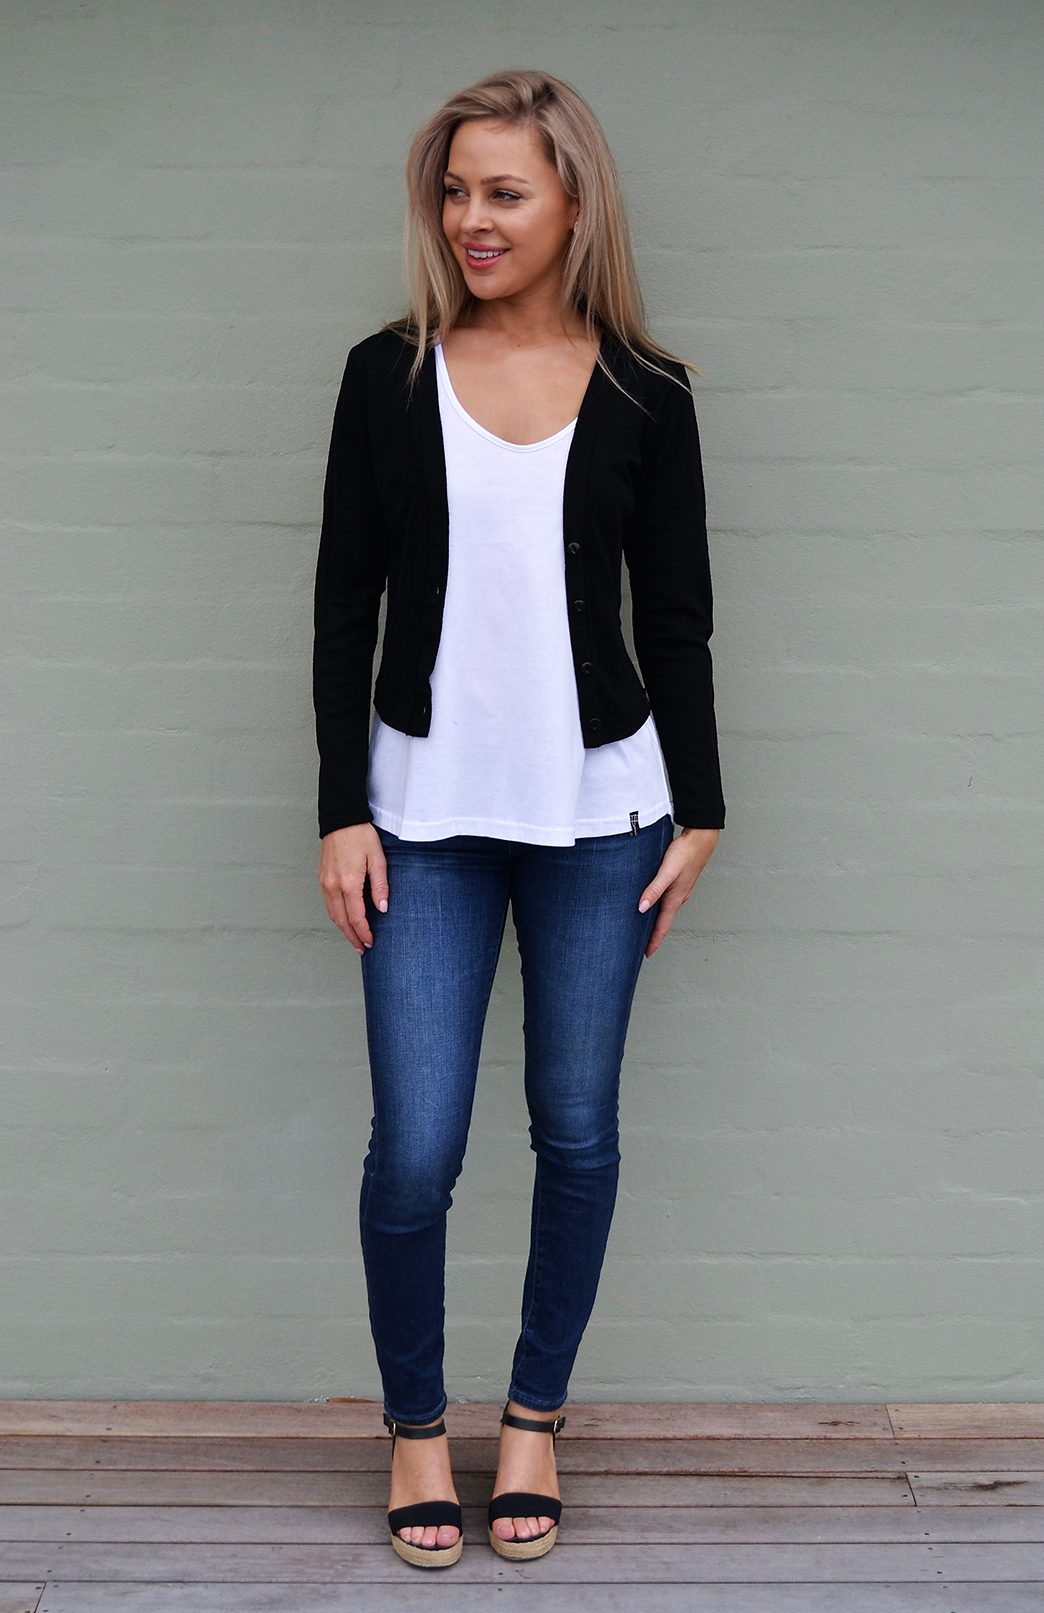 Crop Cardigan - Long Sleeved - Women's Classic Black Long Sleeve Merino Wool Cropped Cardigan with Buttons - Smitten Merino Tasmania Australia